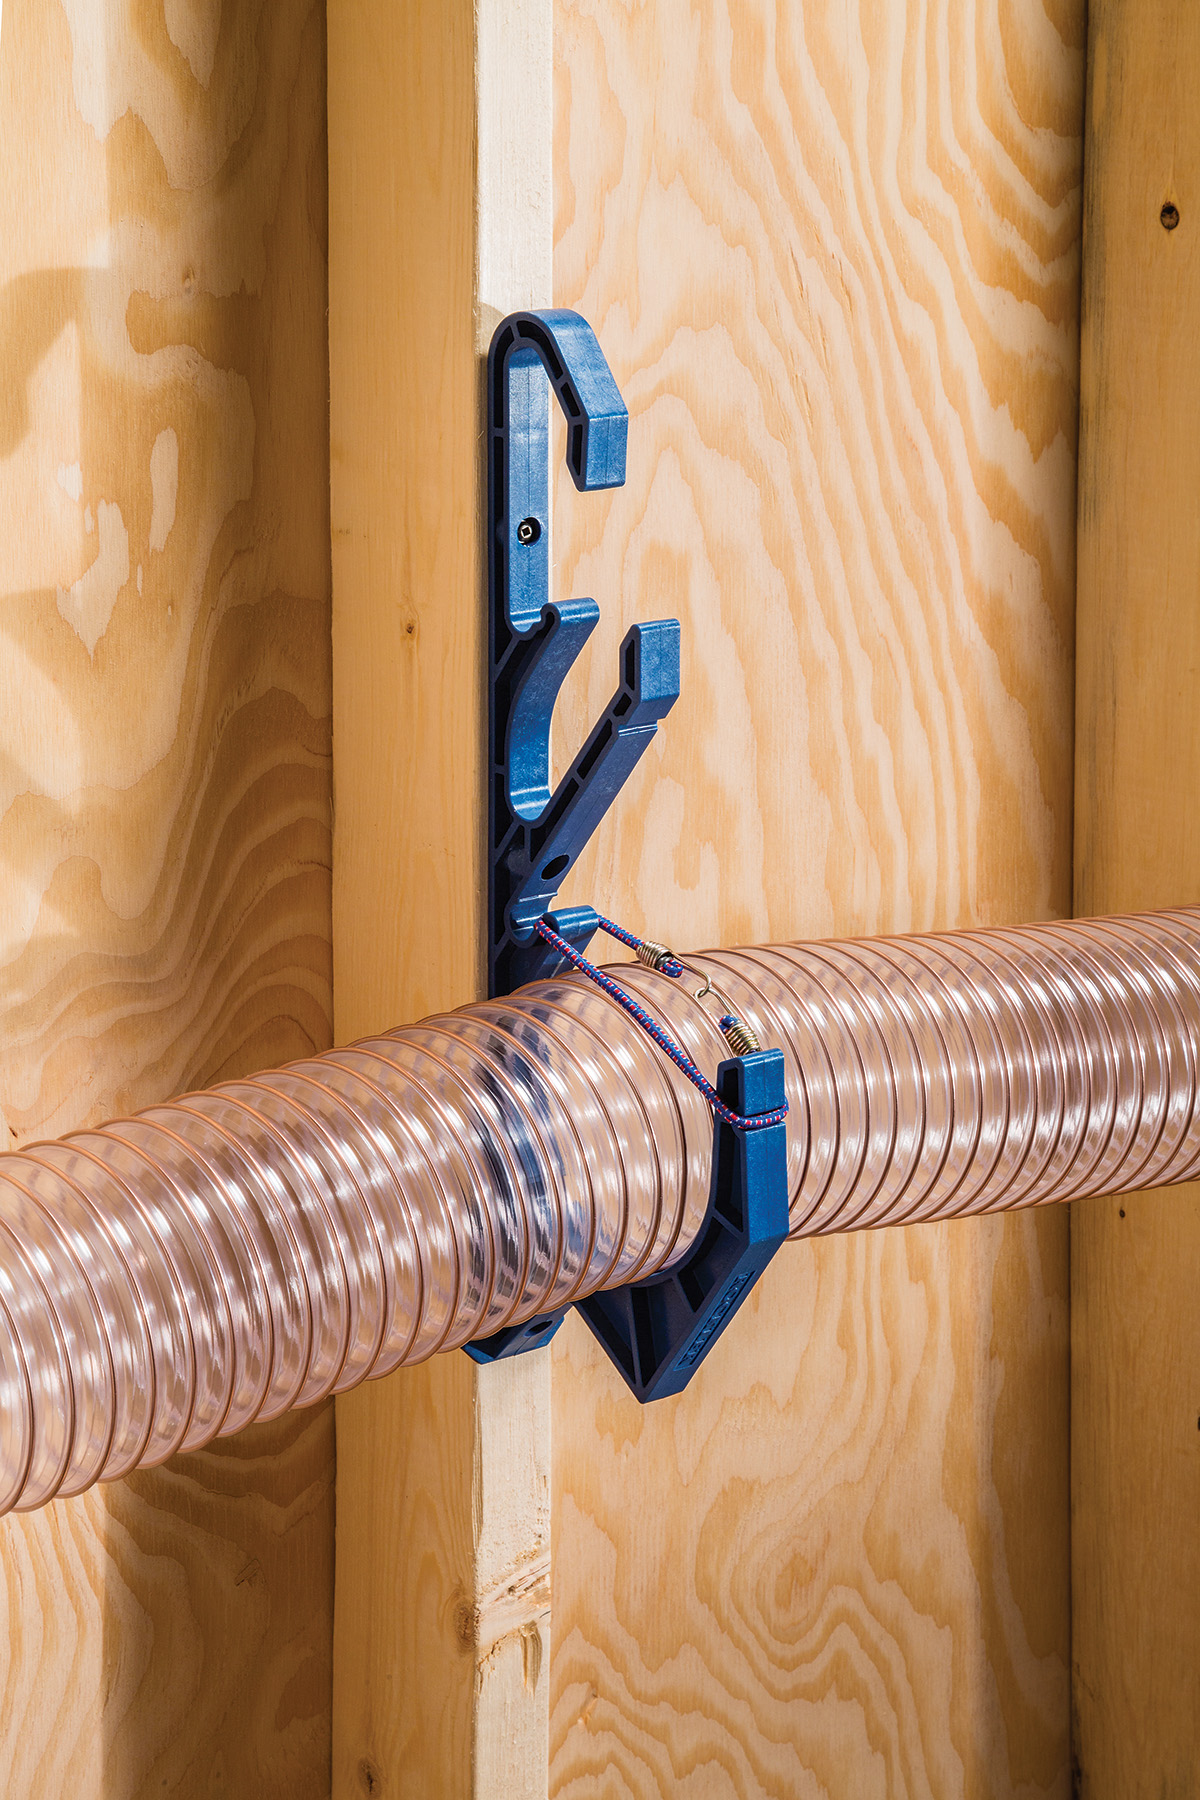 Rockler Introduces New Type Of Cord And Hose Hook